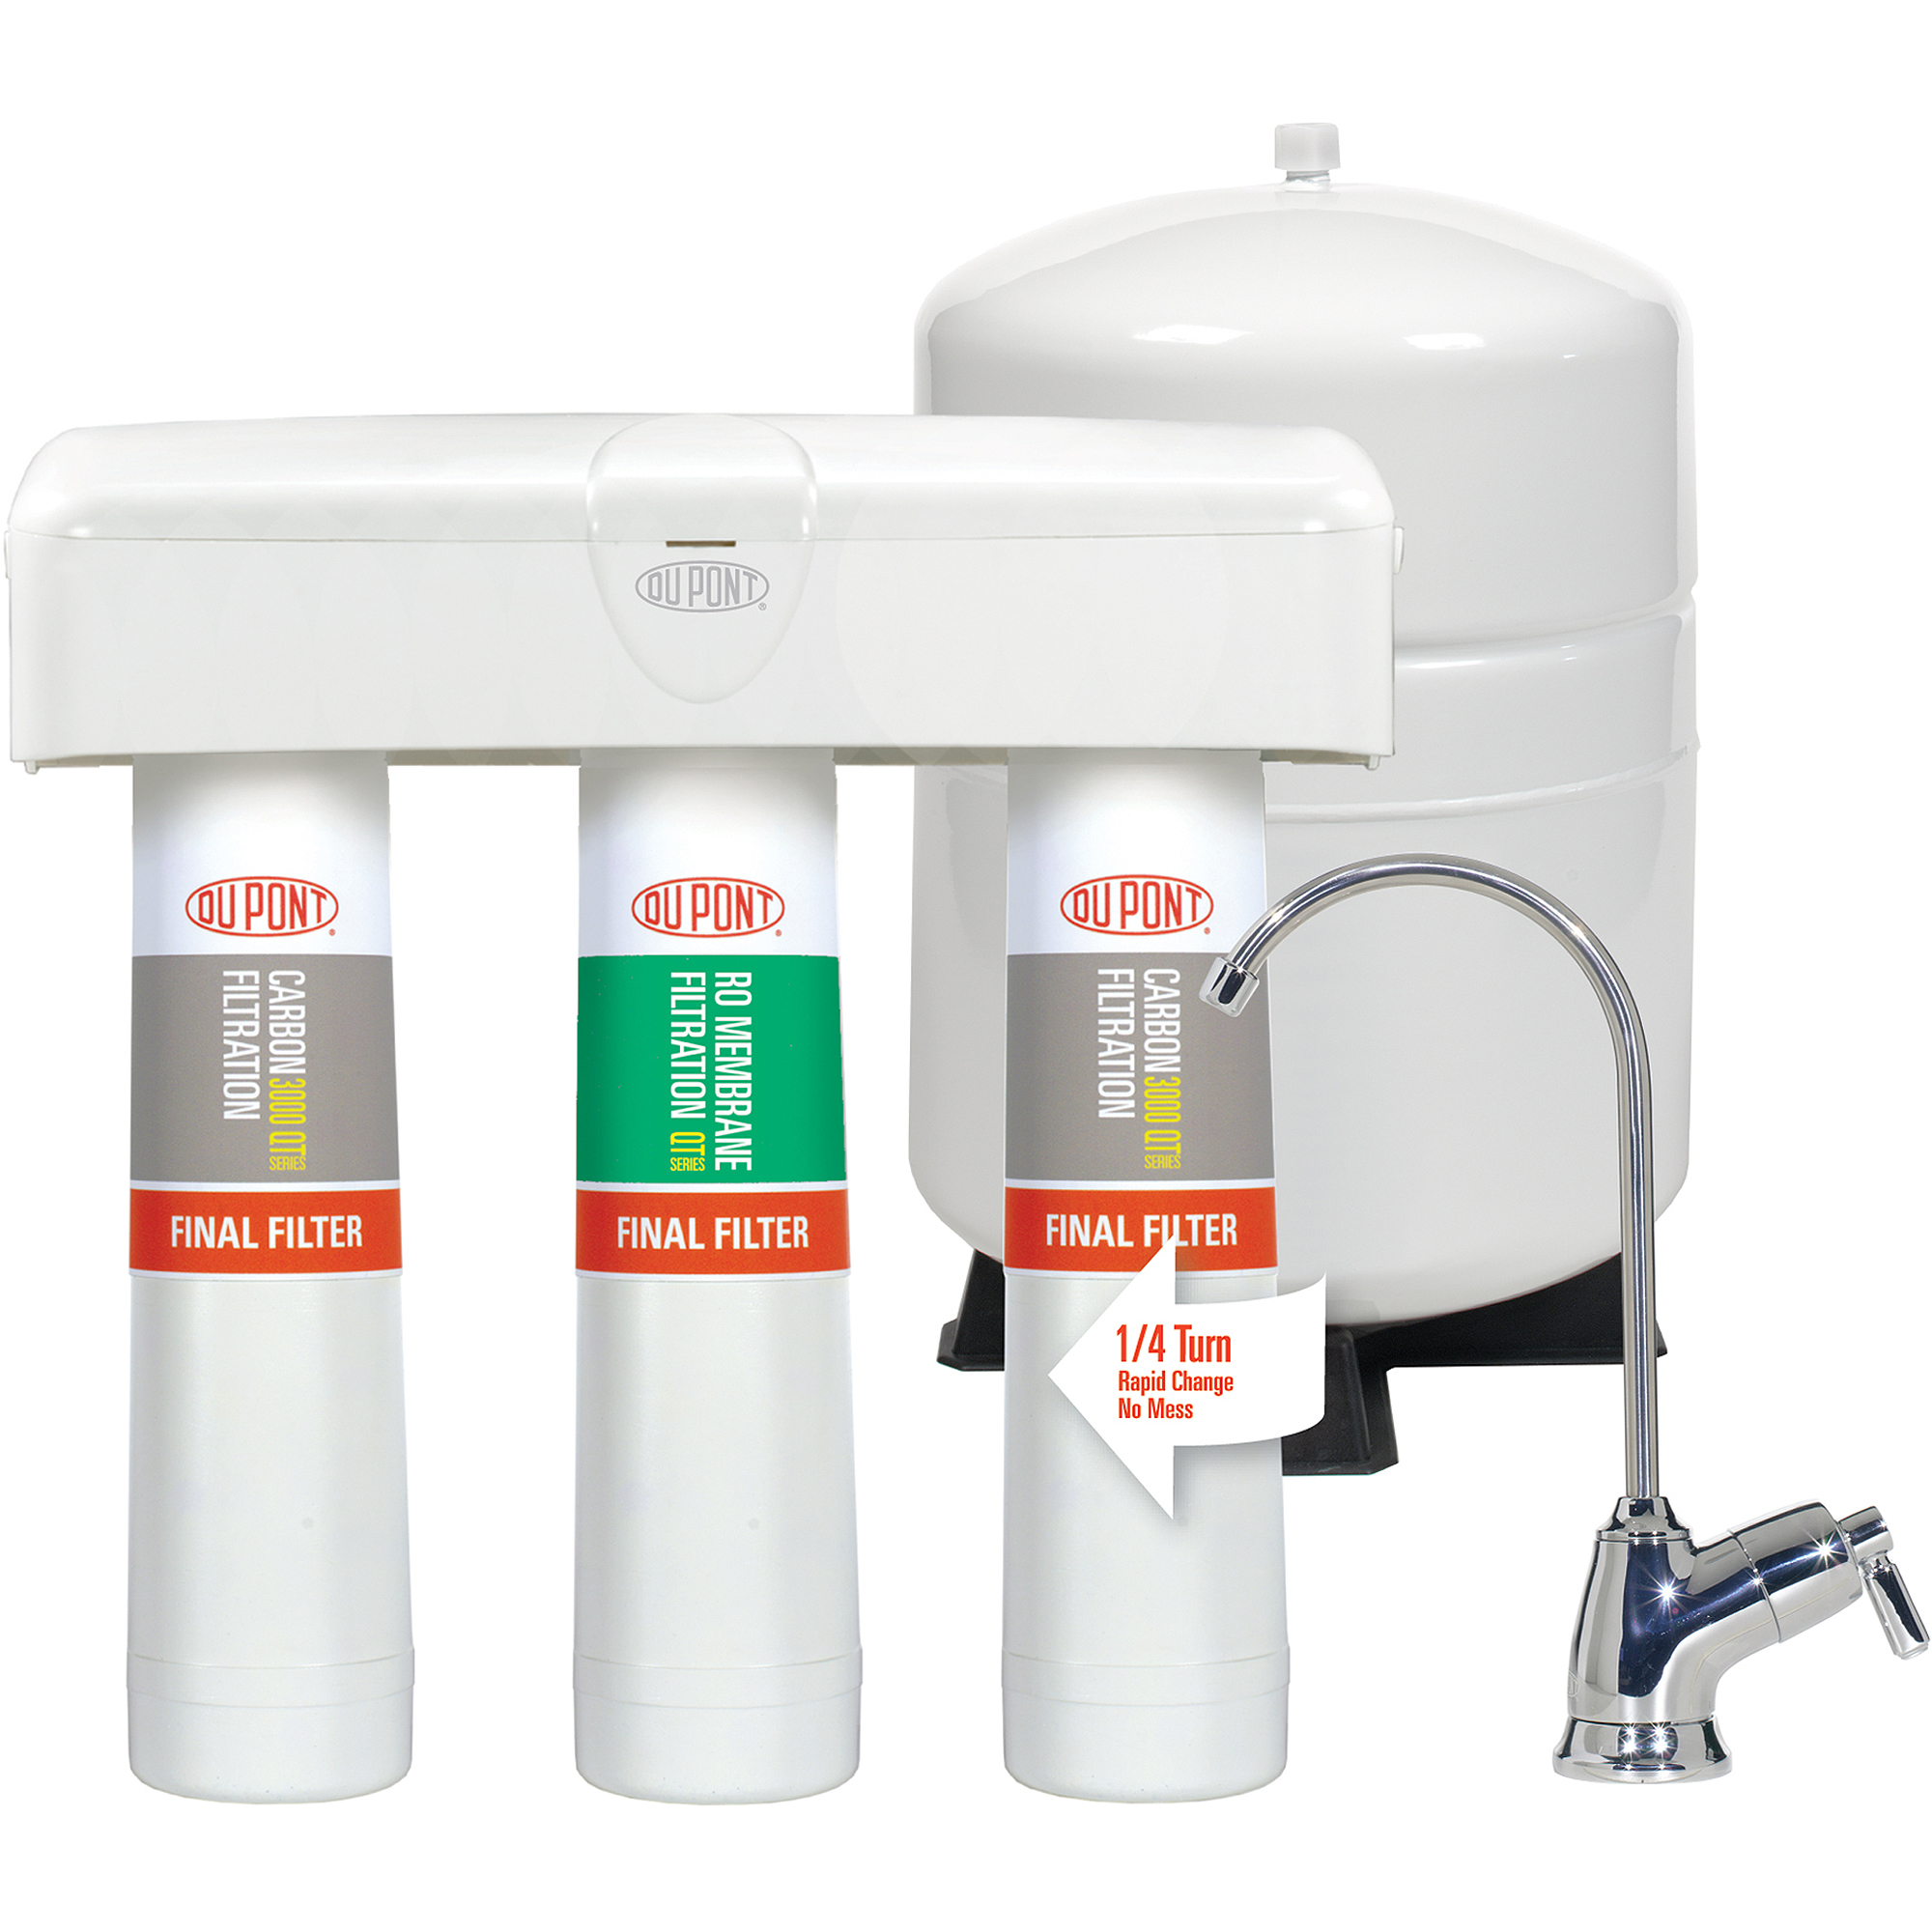 DuPont QuickTwist 3-Stage Reverse Osmosis Water Filtration System with Faucet